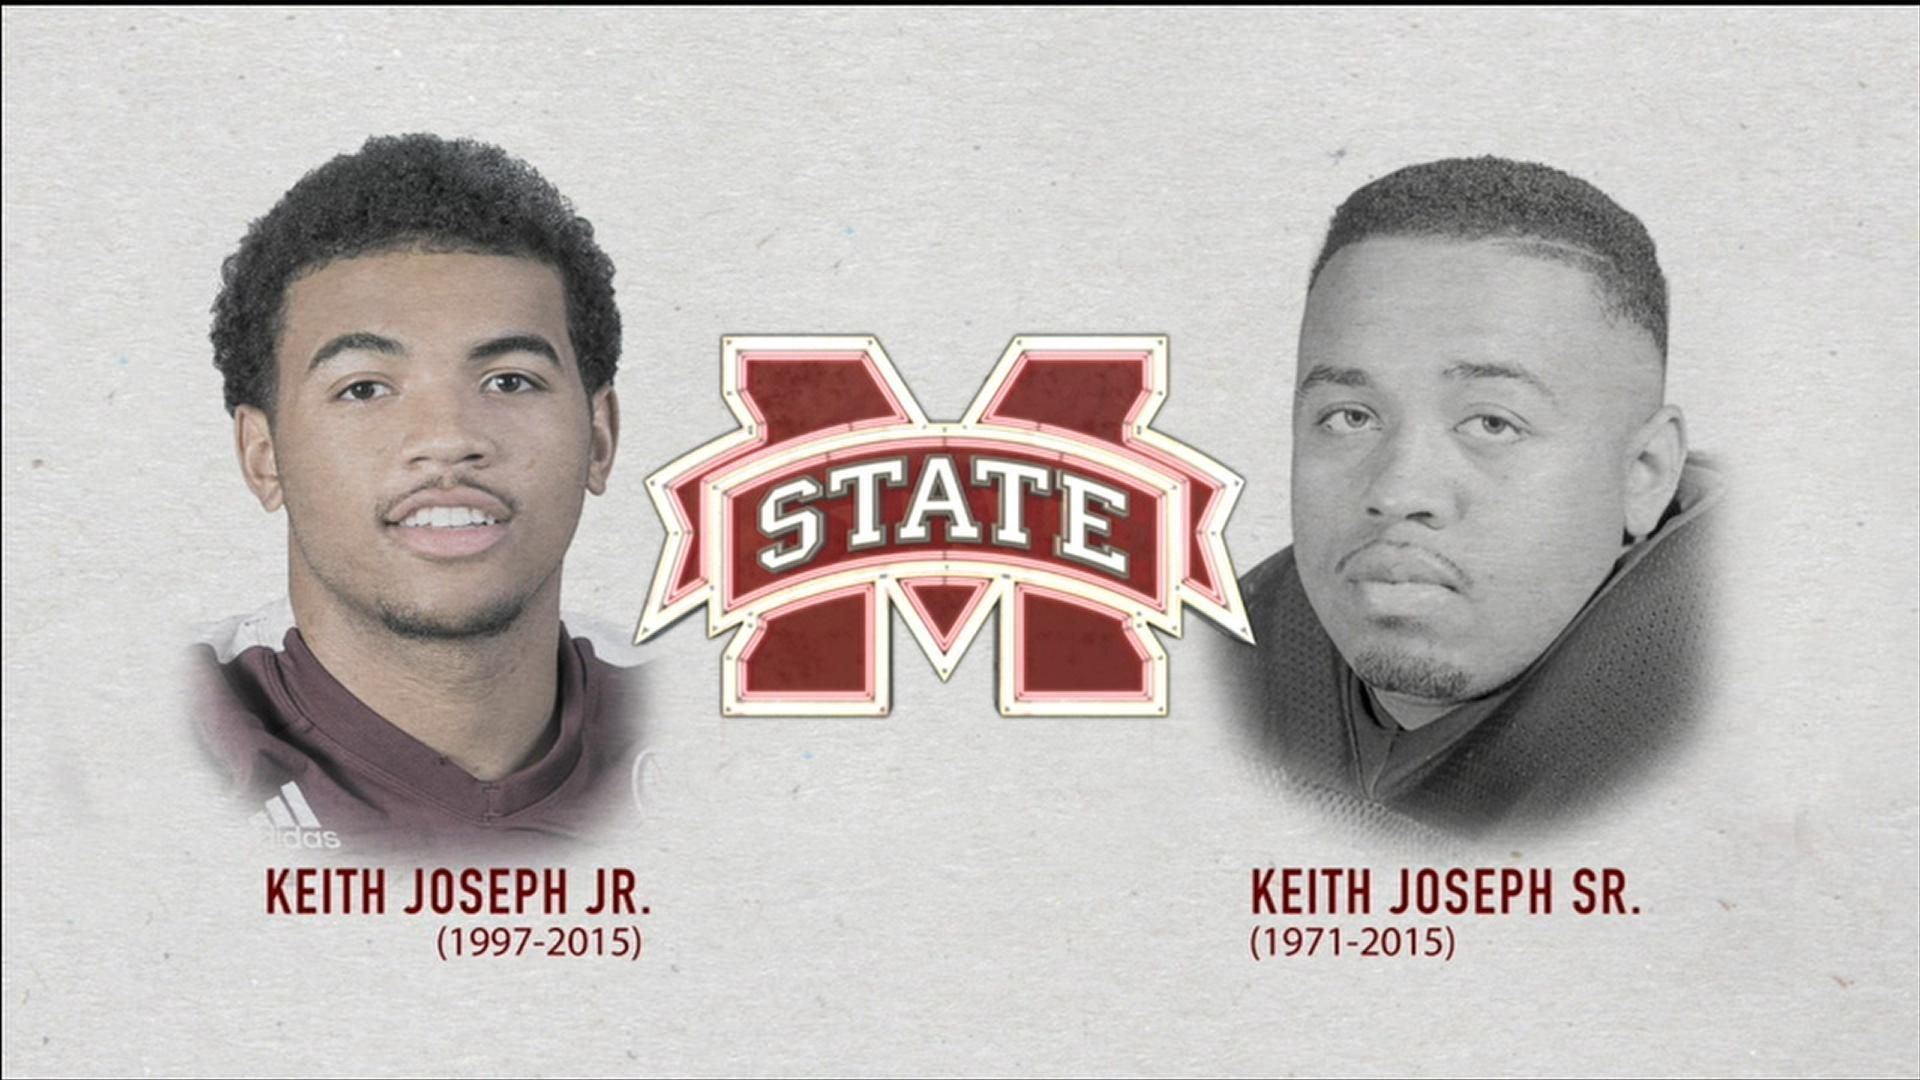 Remembering Mississippi State's Keith Joseph Jr.